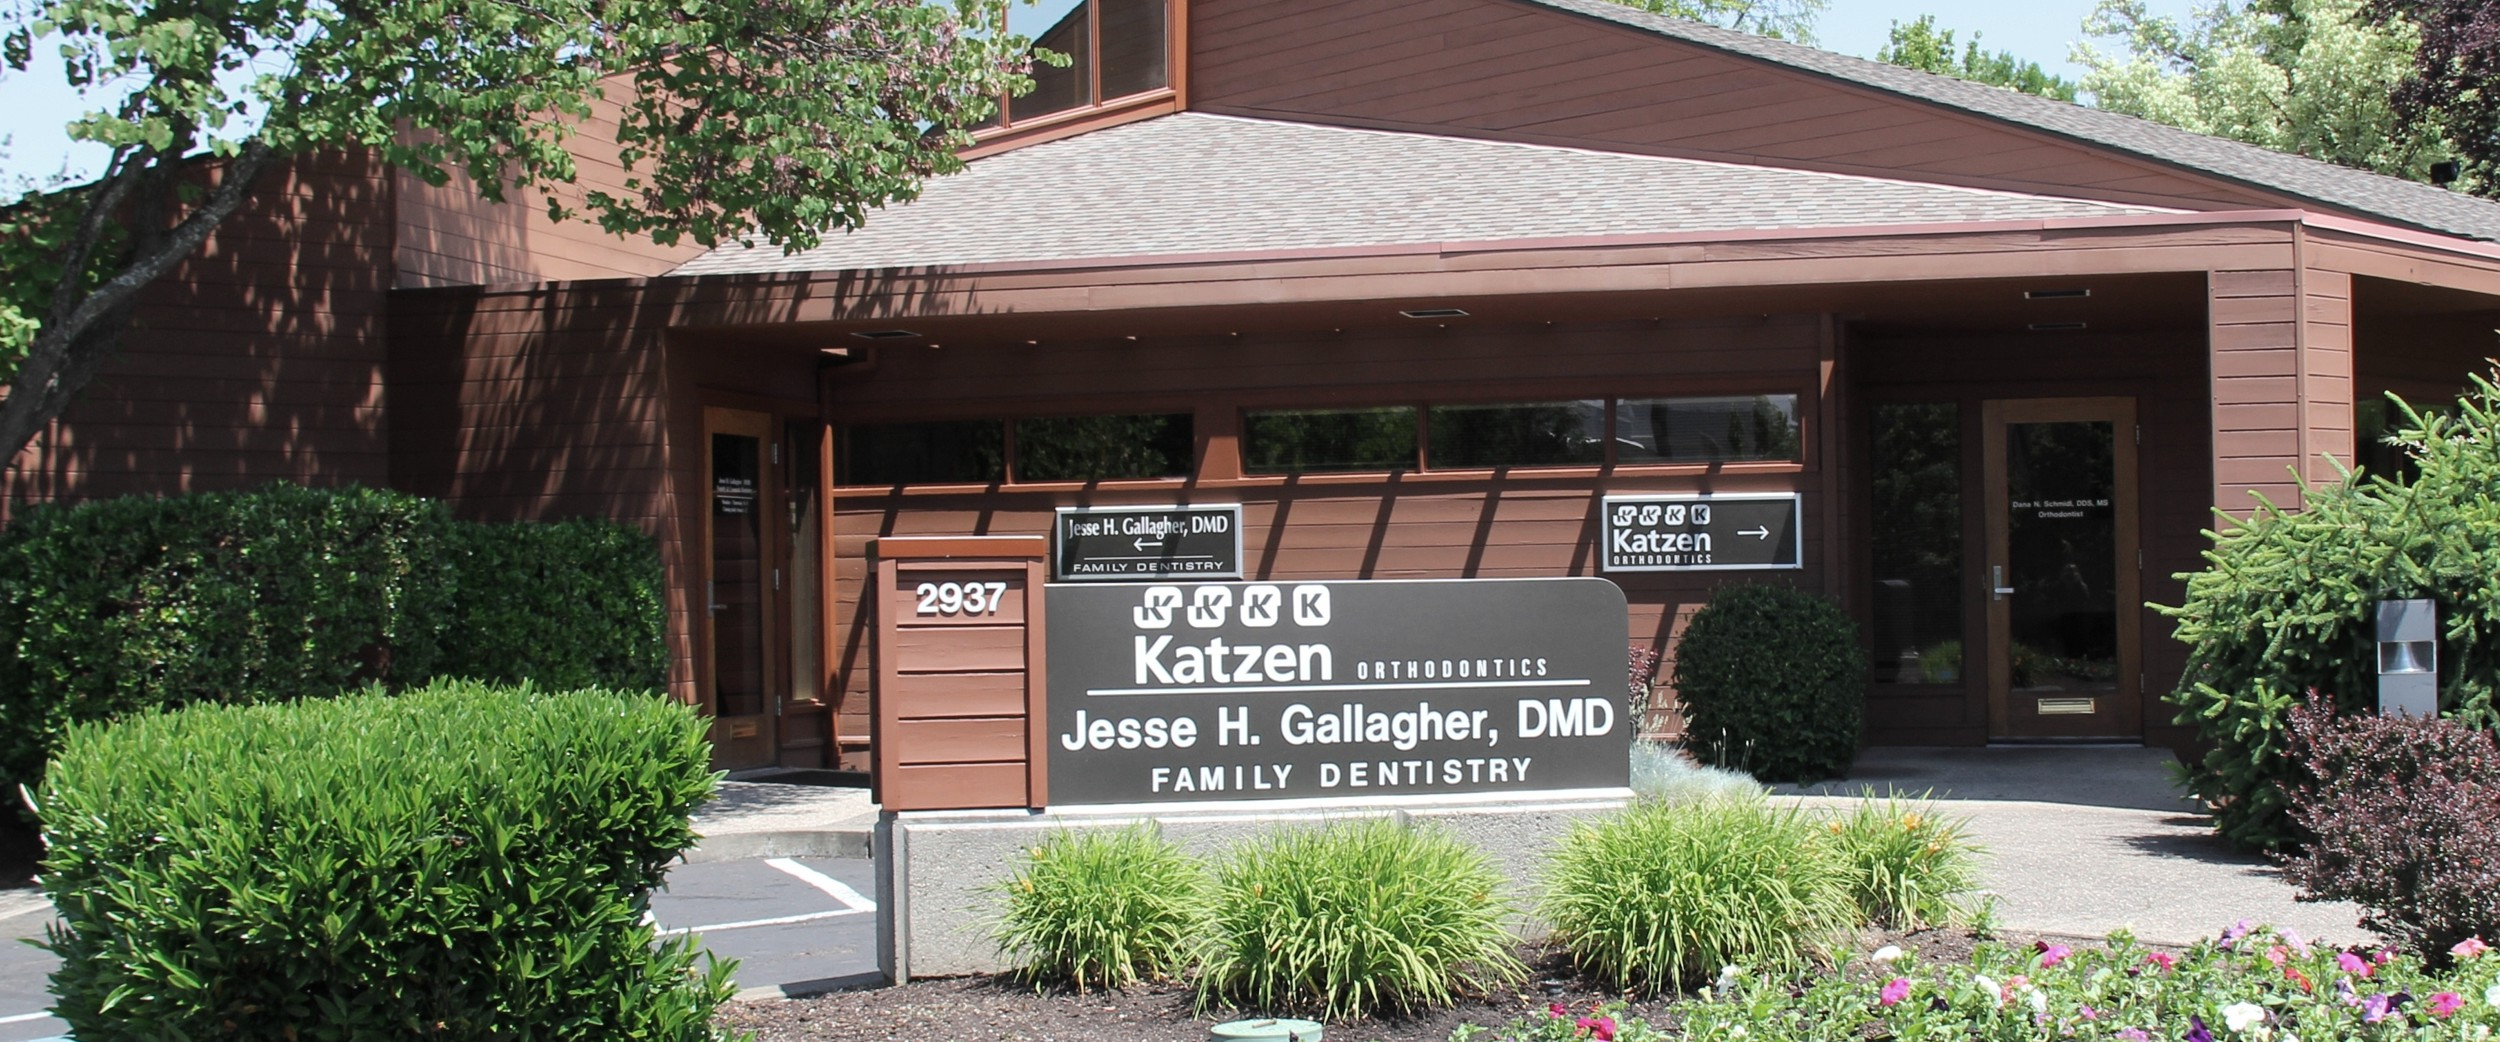 images/tour/dentist-office-medford-oregon.jpg